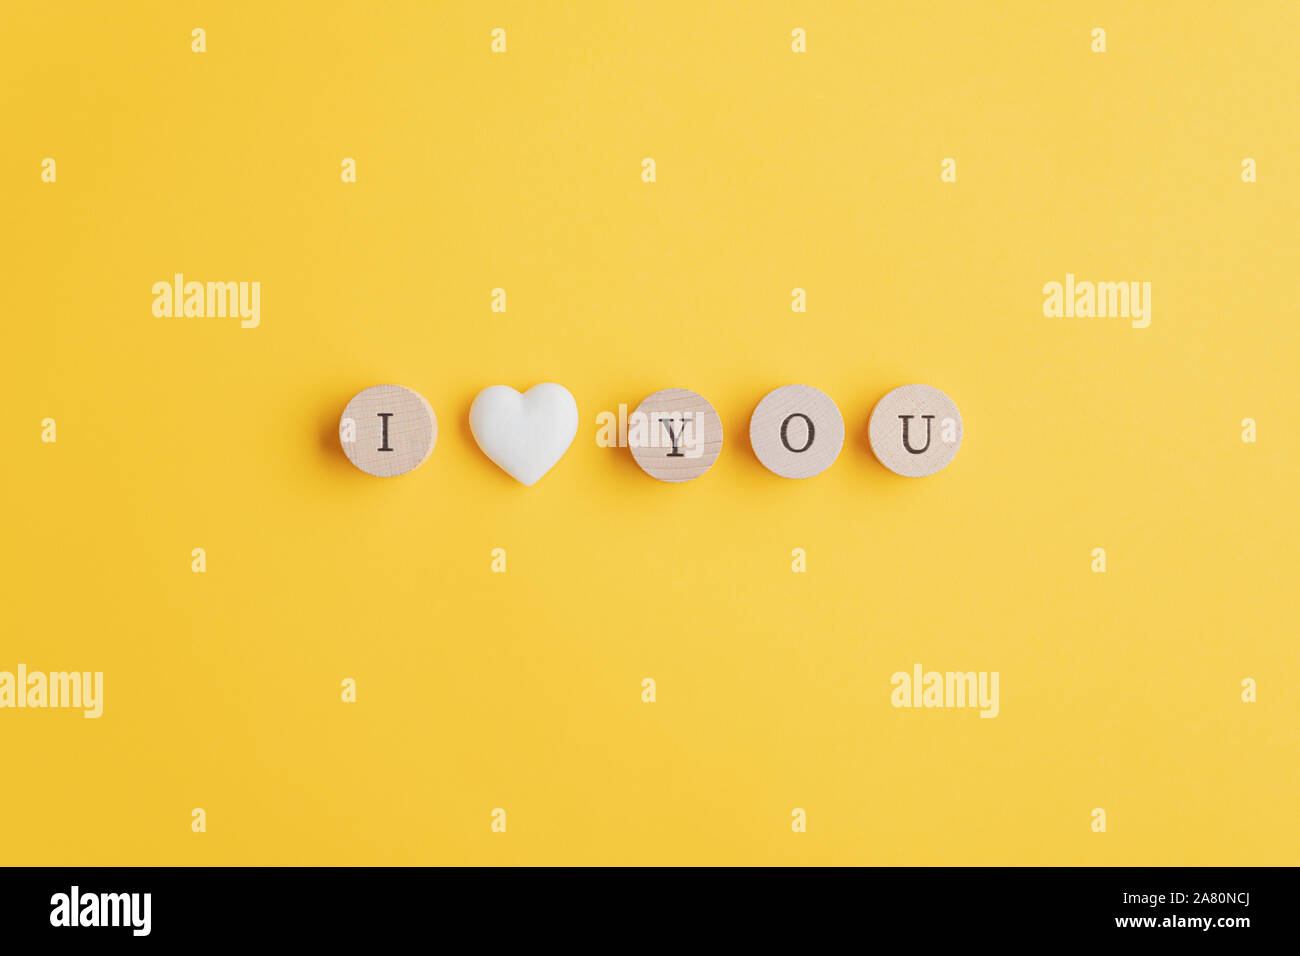 I love you sign spelled on wooden cut circles with a marble heart shape in between. Over yellow background with copy space. Stock Photo